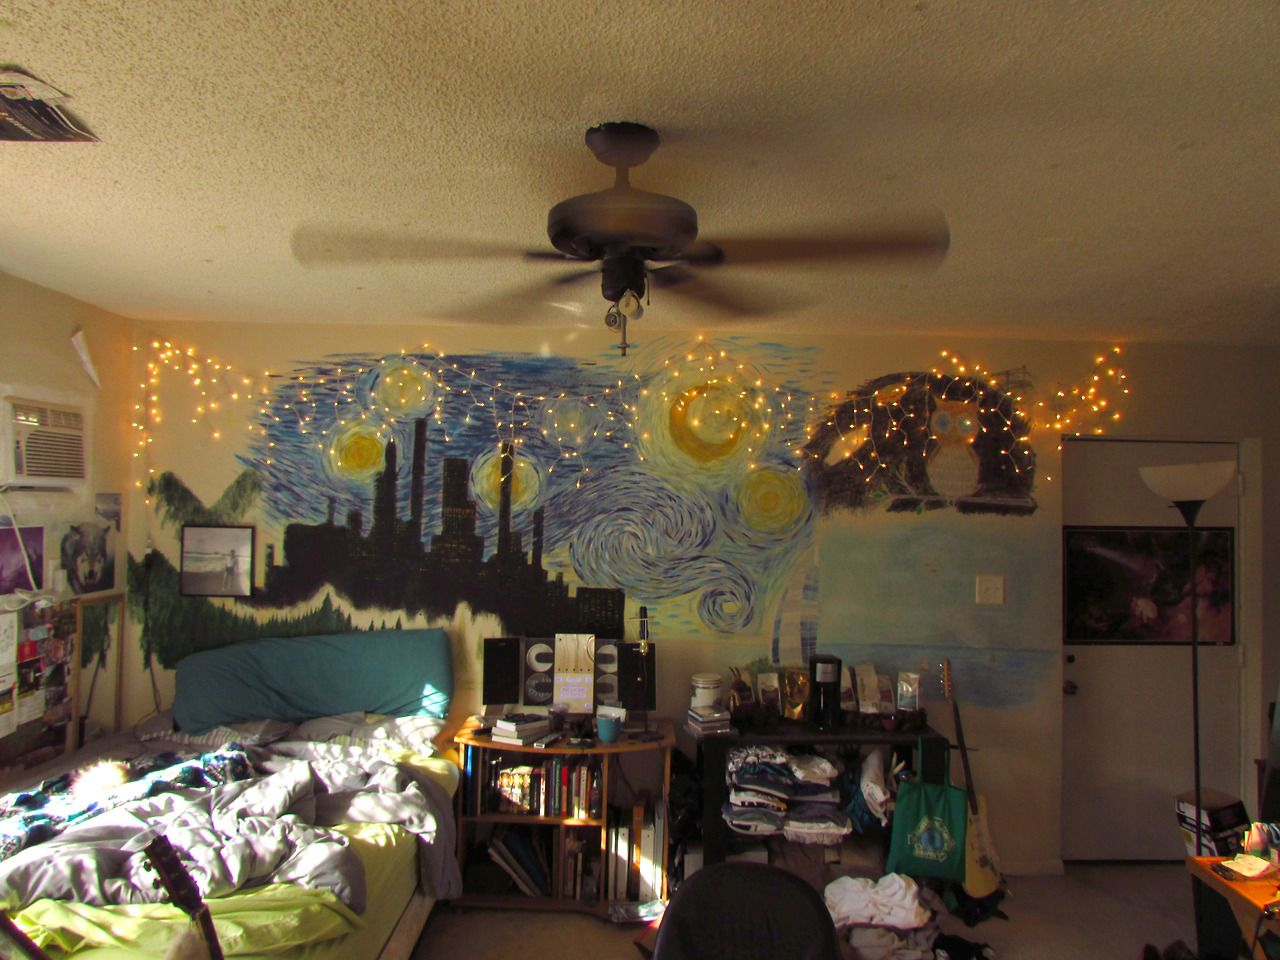 Superior 4 Images, Go To Tumblr Post   Like Vanilla: Wellmetkinsman: I Wonder What  Vincent Van Gogh Would Think Of My Bedroom [[STARRY NIGHT INTENSIFIES]]